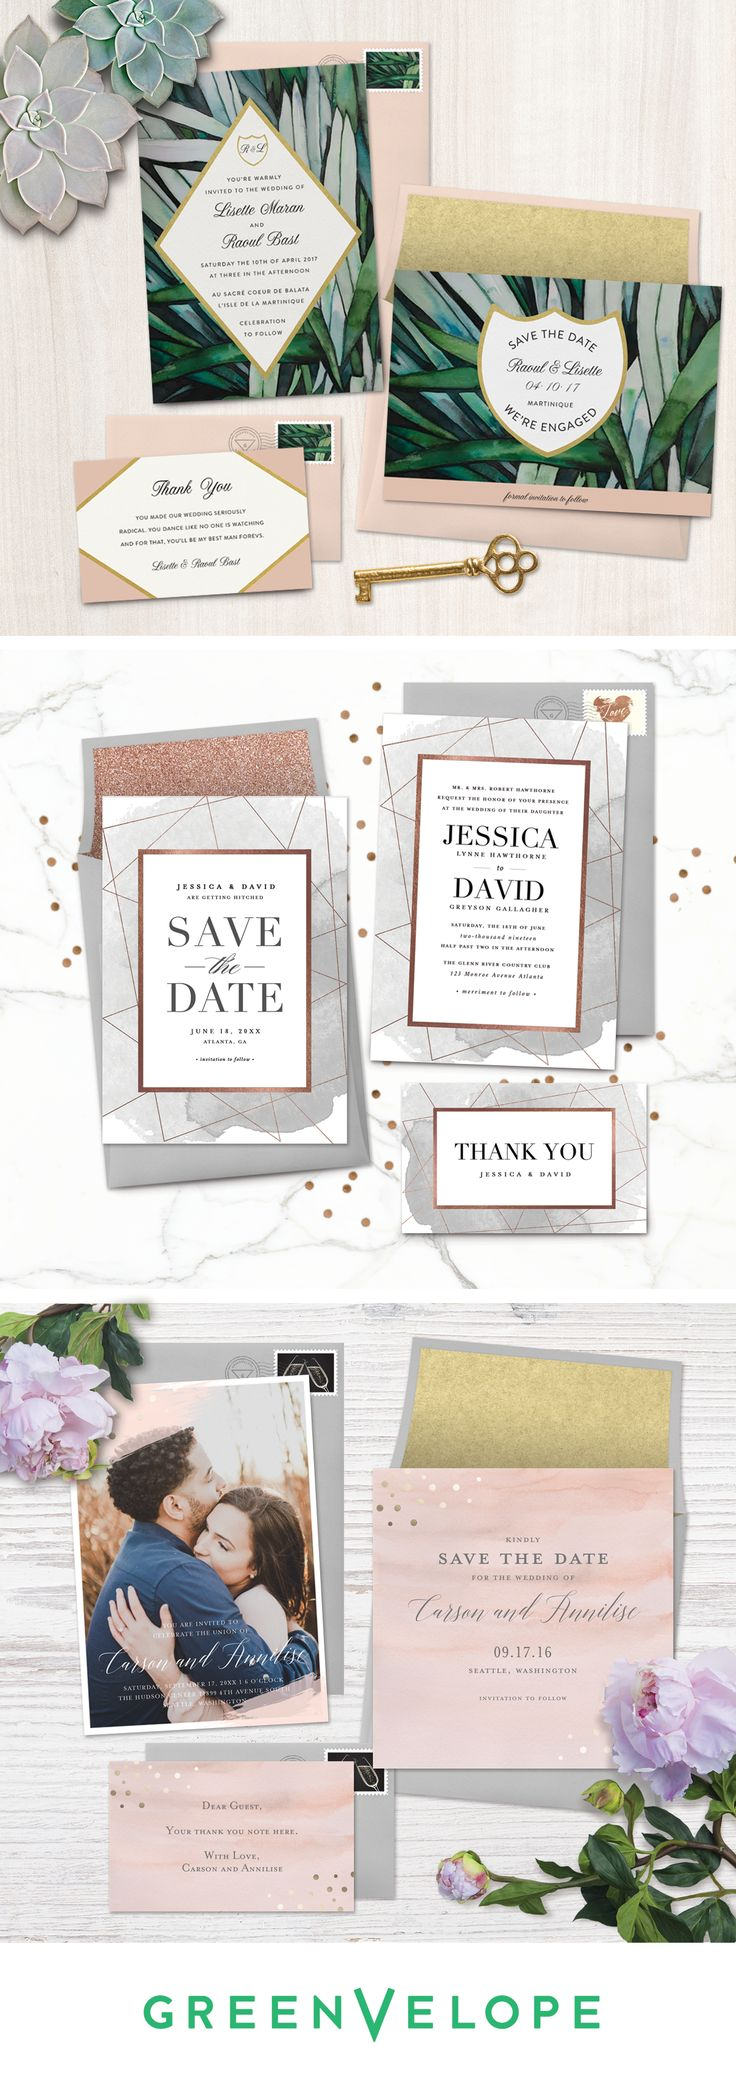 Chic, paperless wedding invitations that come complete with effortless RSVP tracking.